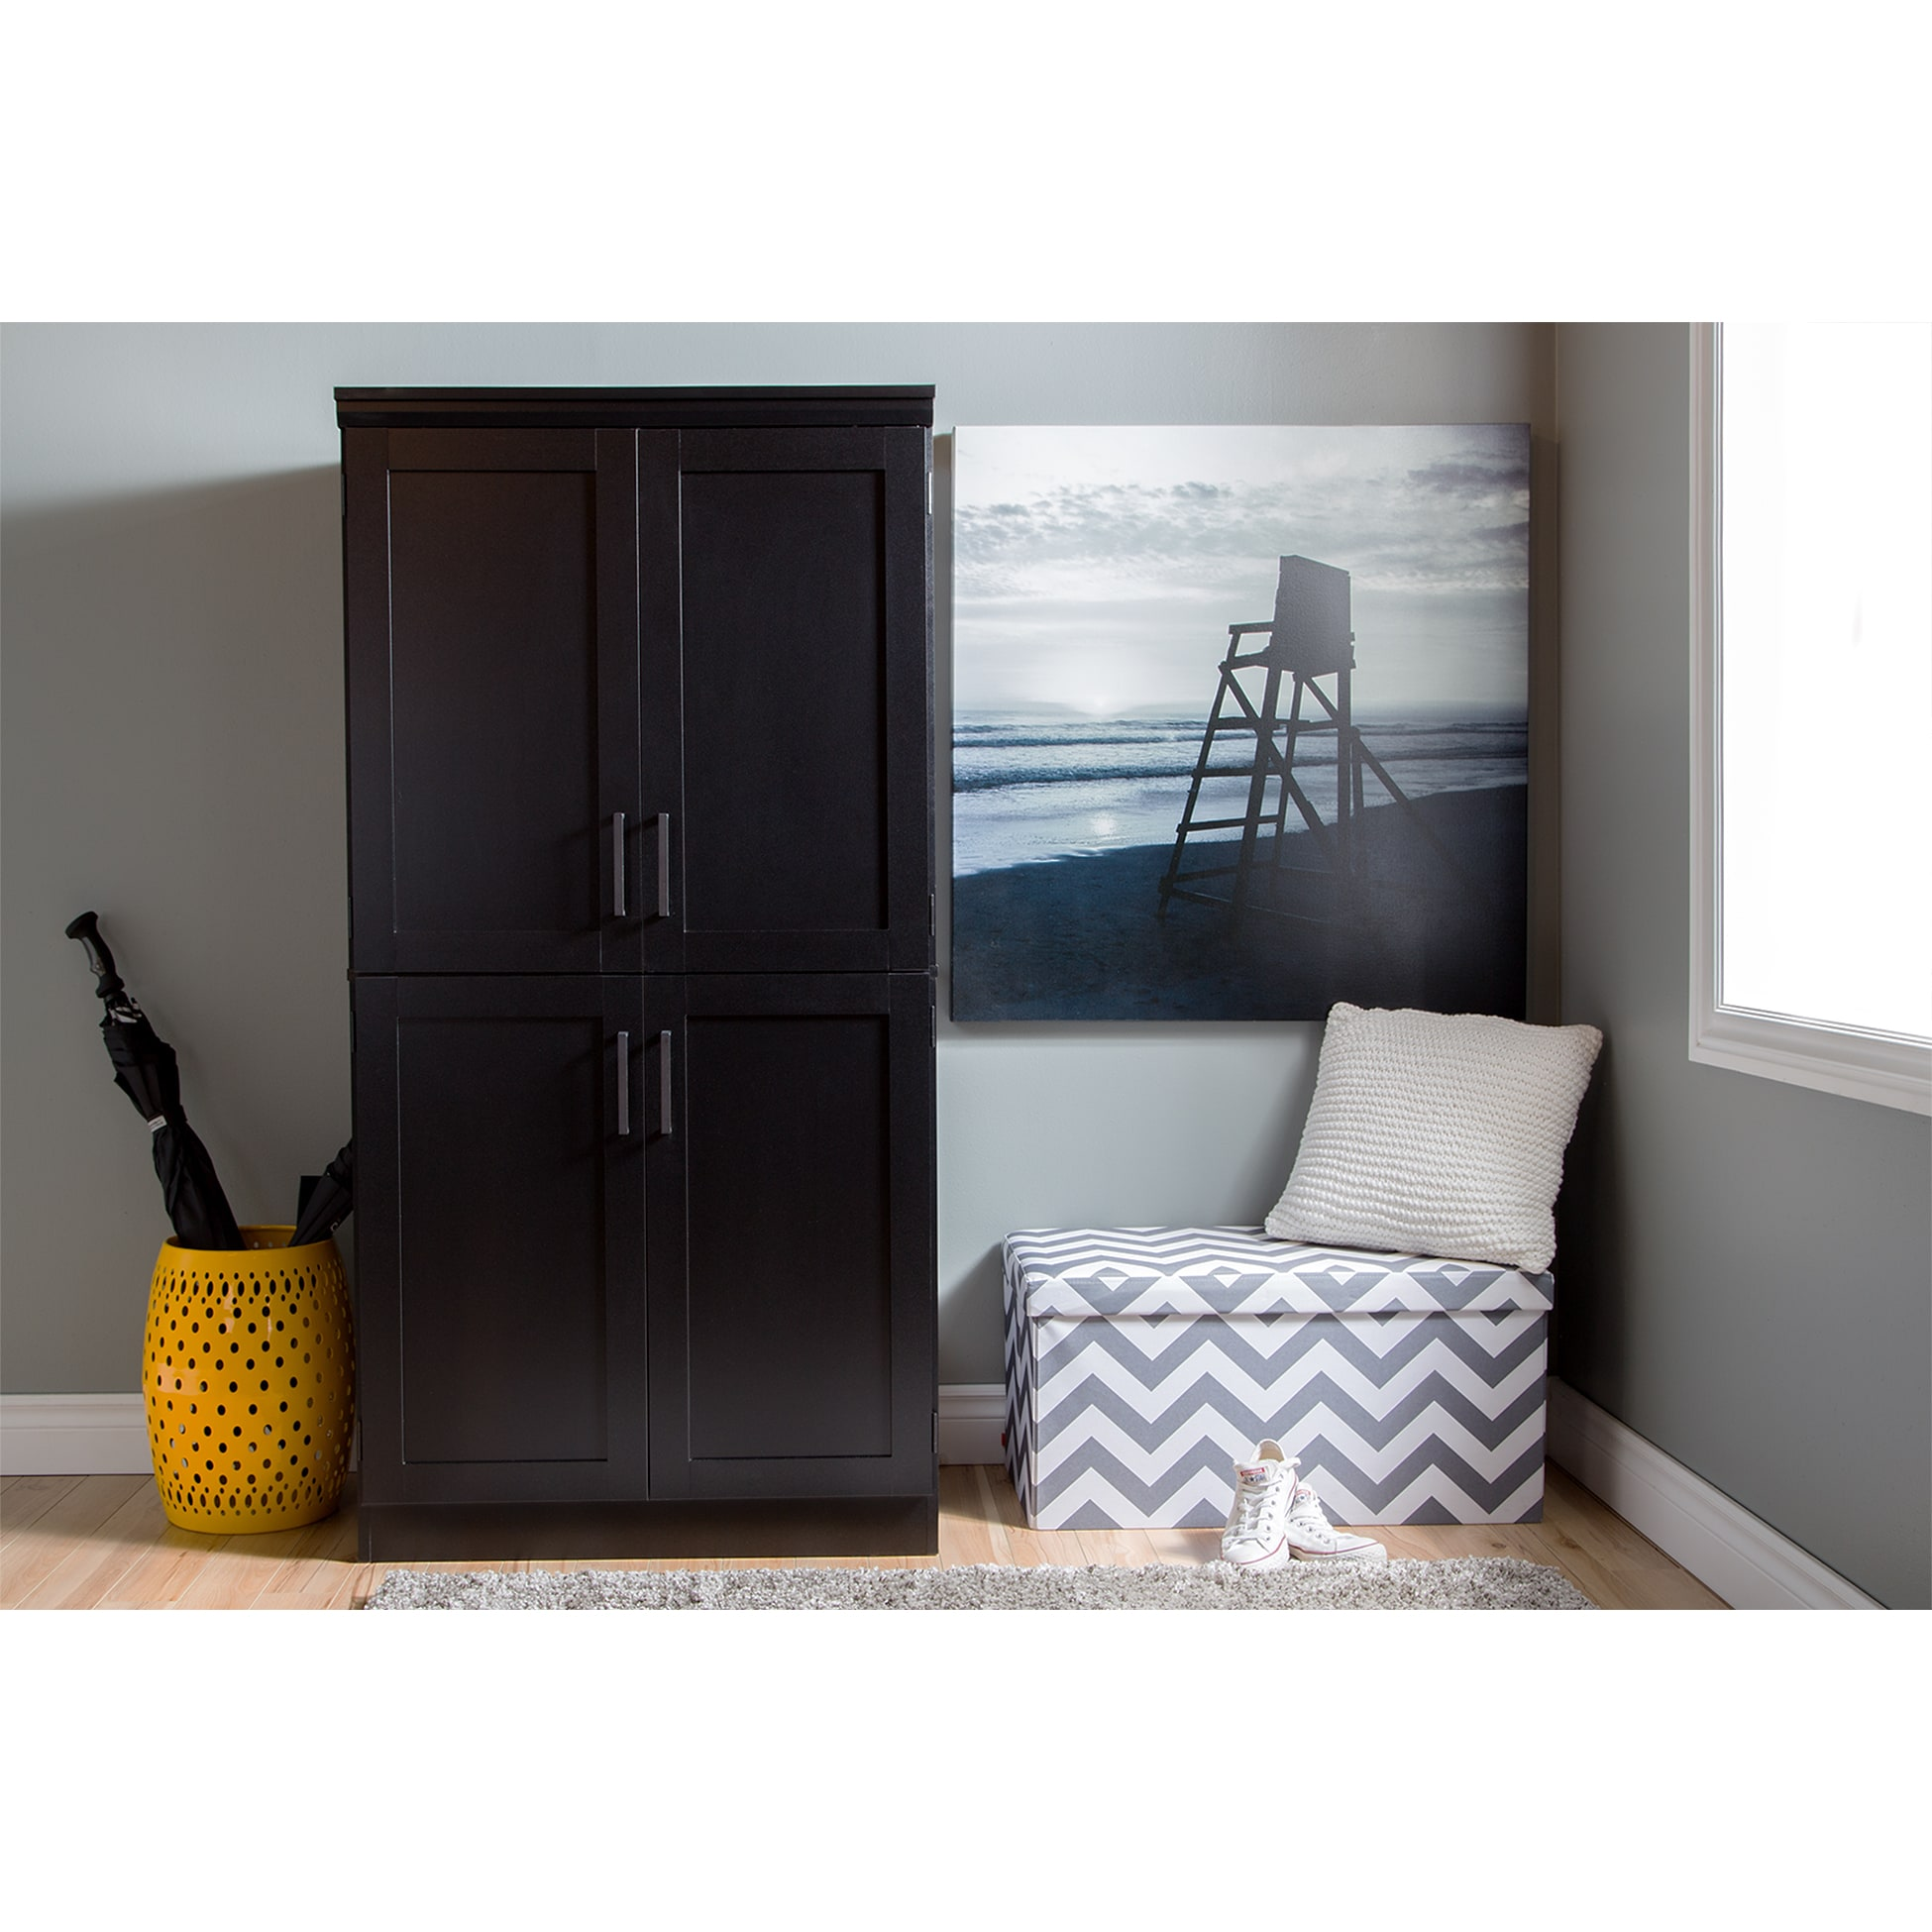 Shop South Shore Furniture Morgan Wood/Laminate 4 Door Shaker Armoire    Free Shipping Today   Overstock.com   10888706